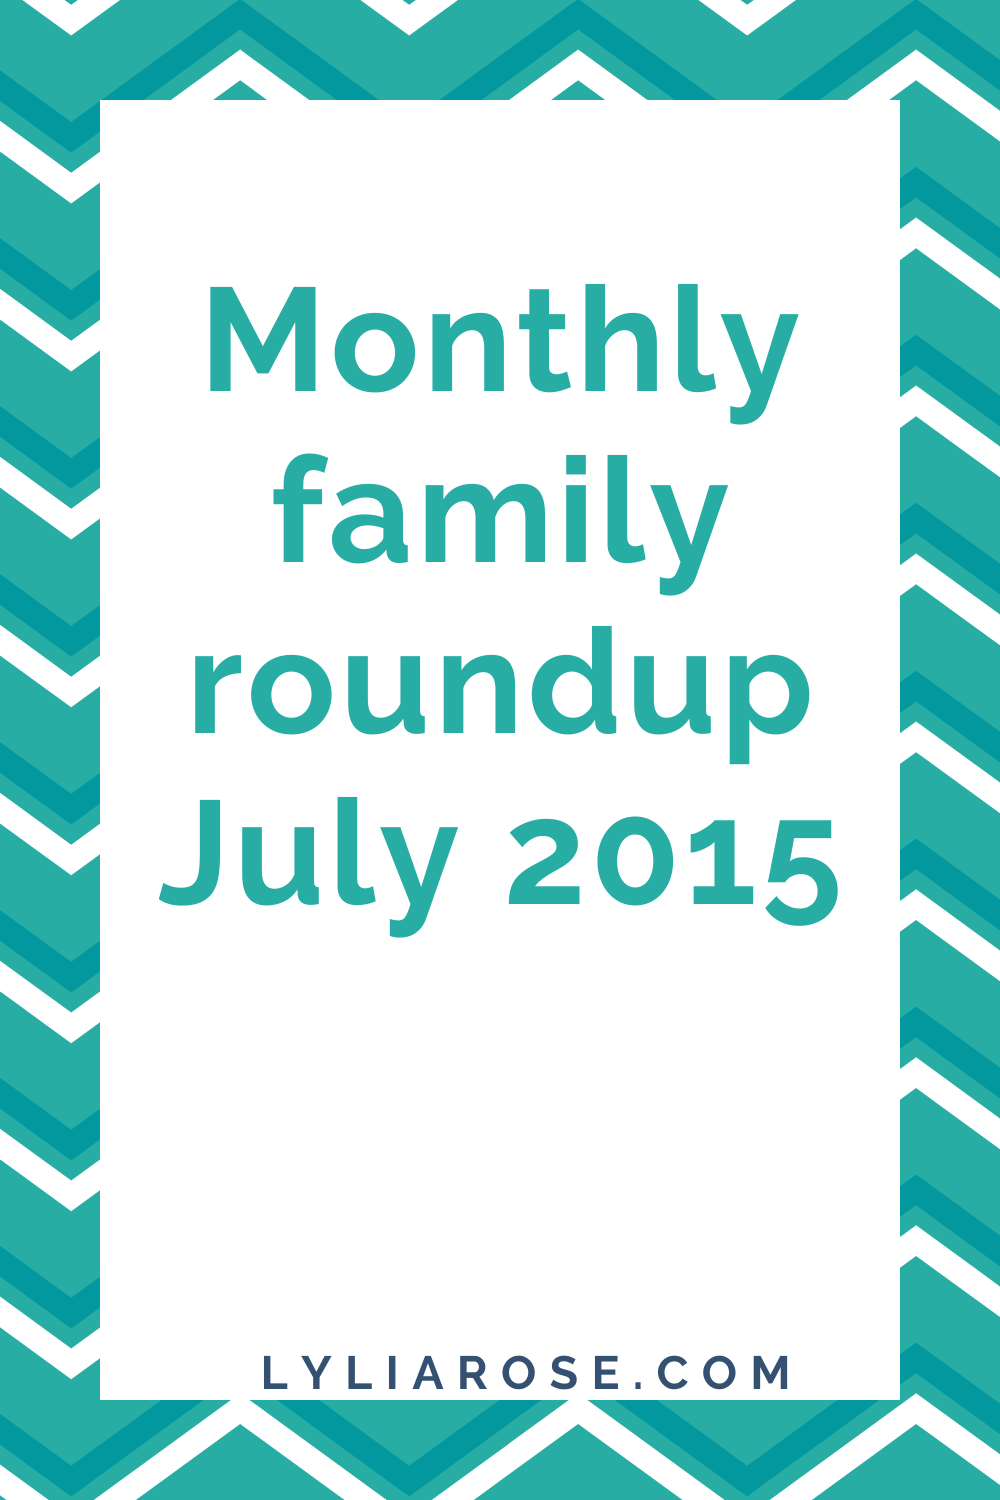 Monthly family roundup July 2015